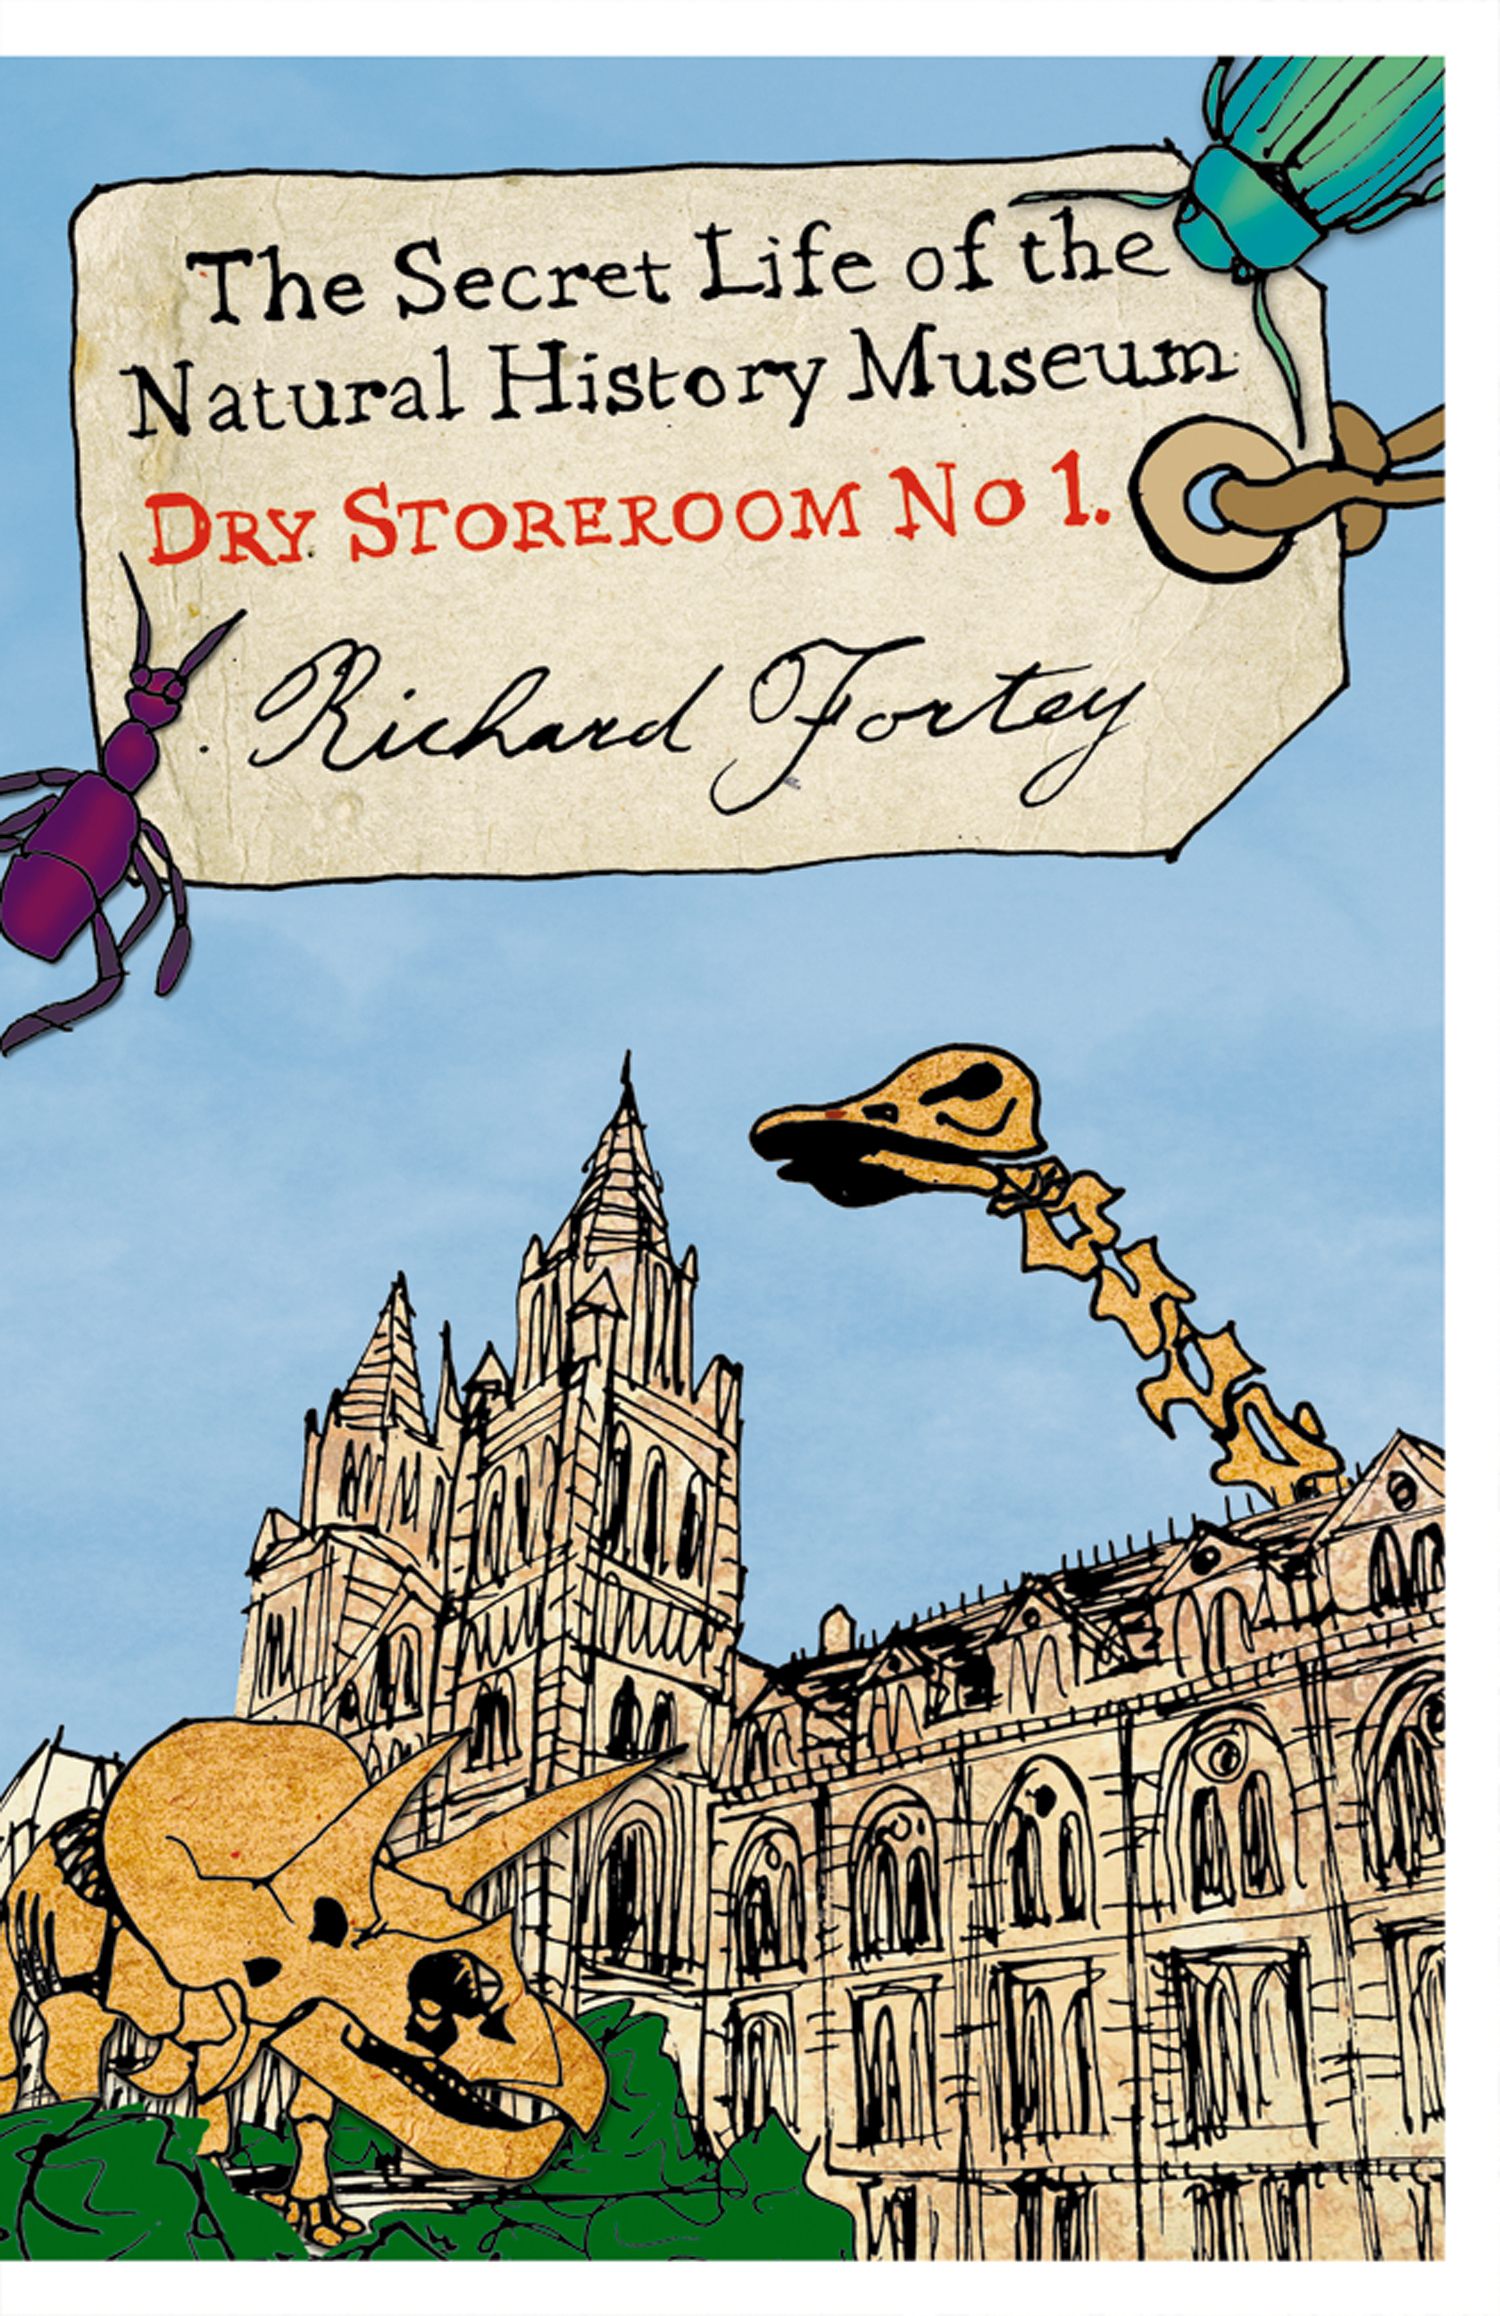 Dry Store Room No. 1: The Secret Life of the Natural History Museum